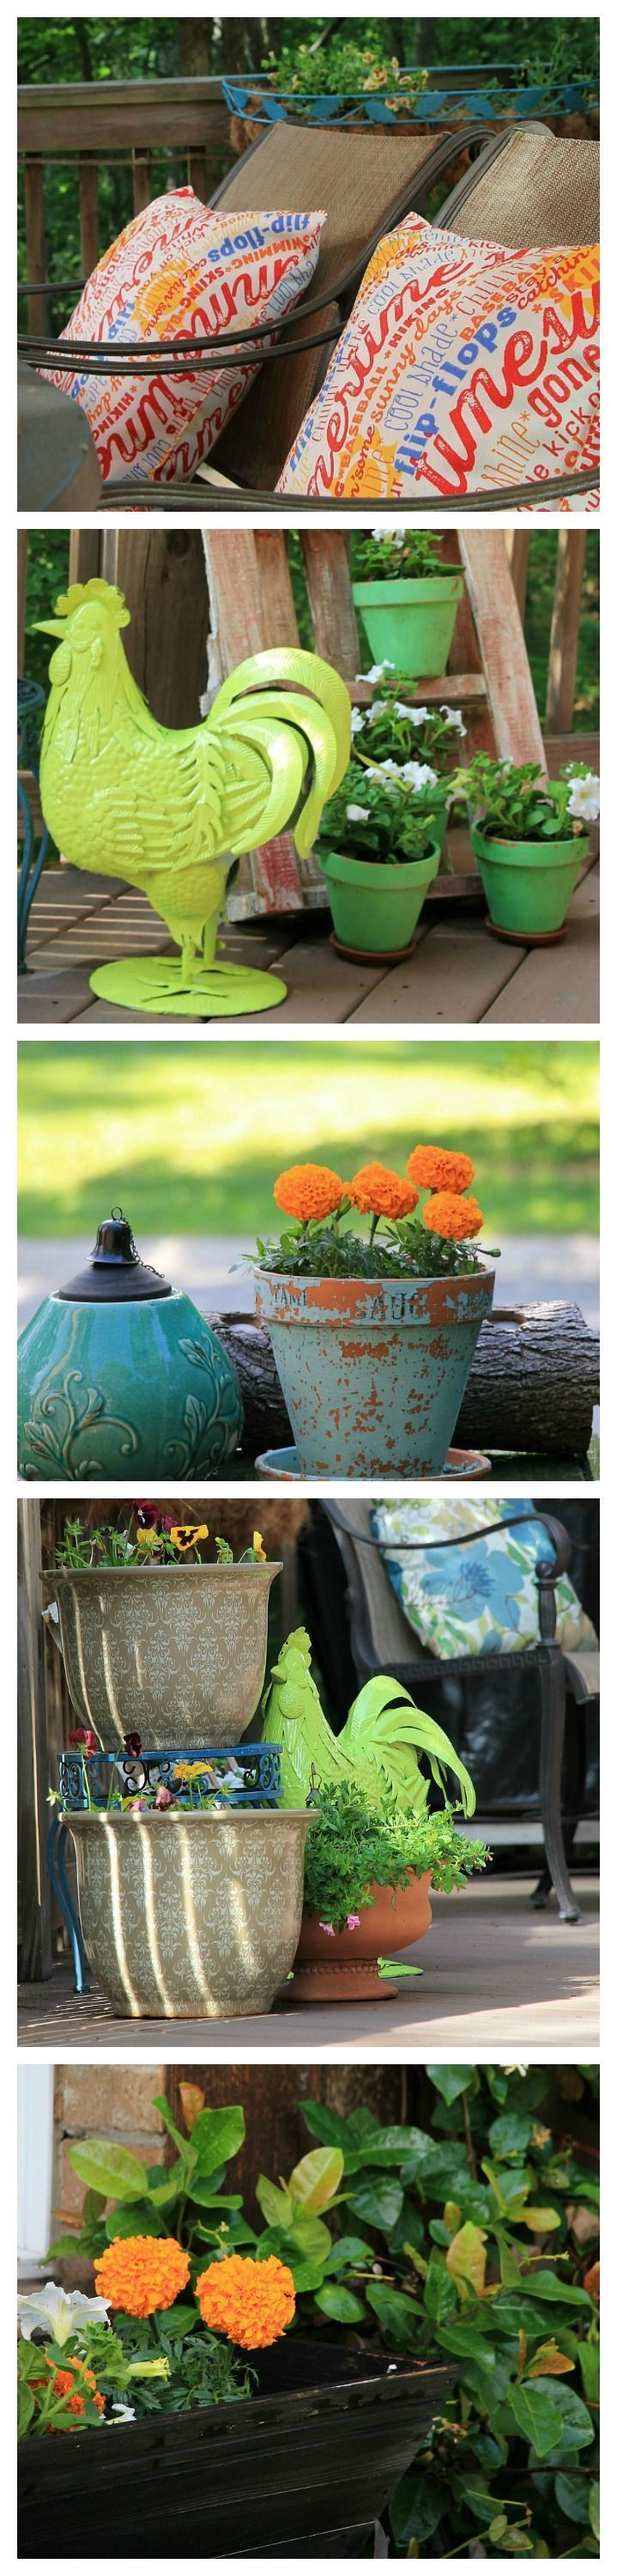 Outdoor deck projects and container gardening.